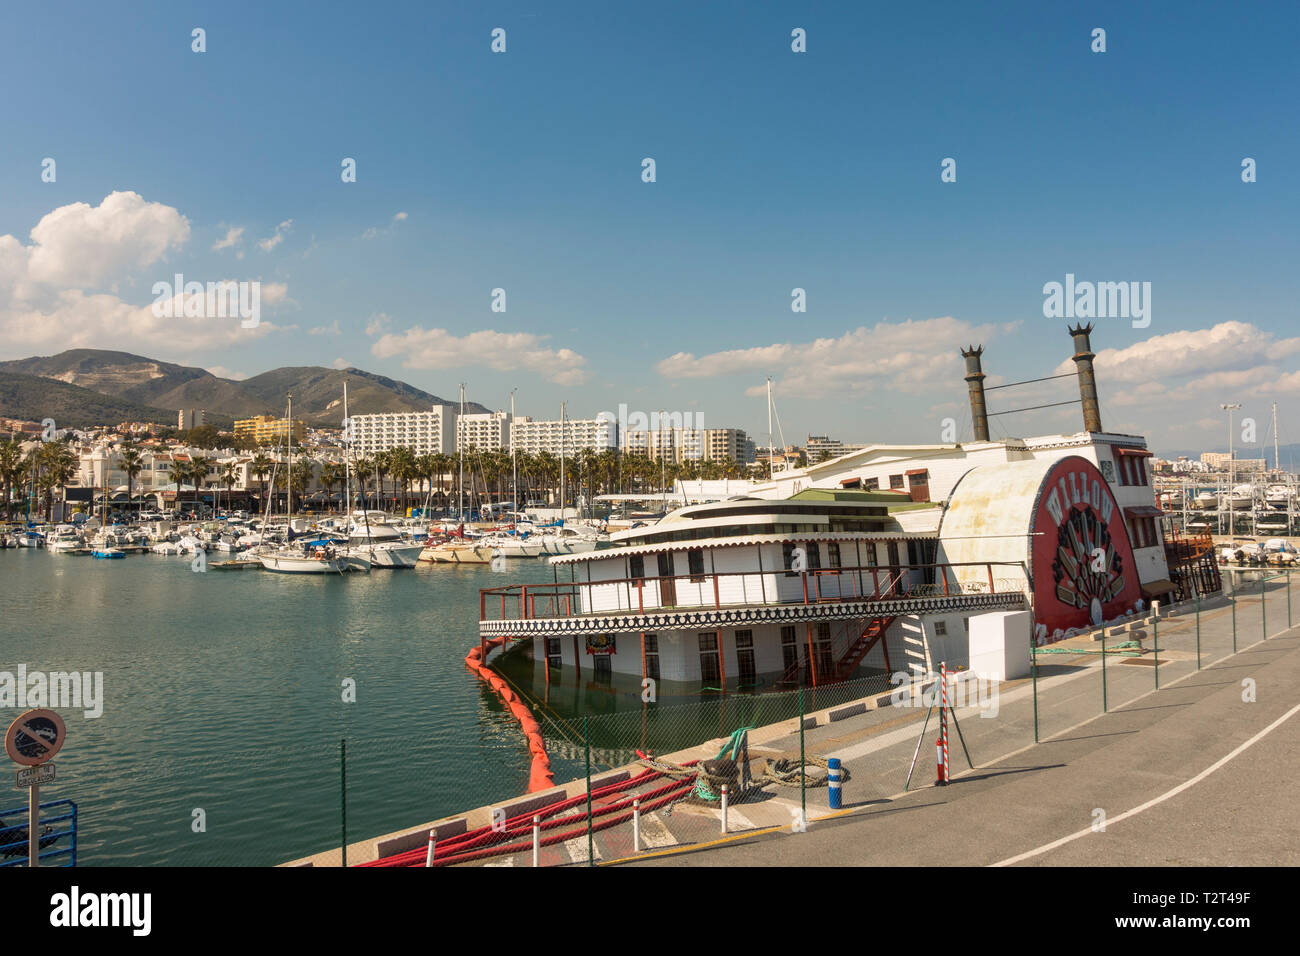 "The Mississippi Steam Boat ""Willow"" half sunken, tied up at the Marina Benalmádena Puerto. Port. Andalusia, Spain. Stock Photo"